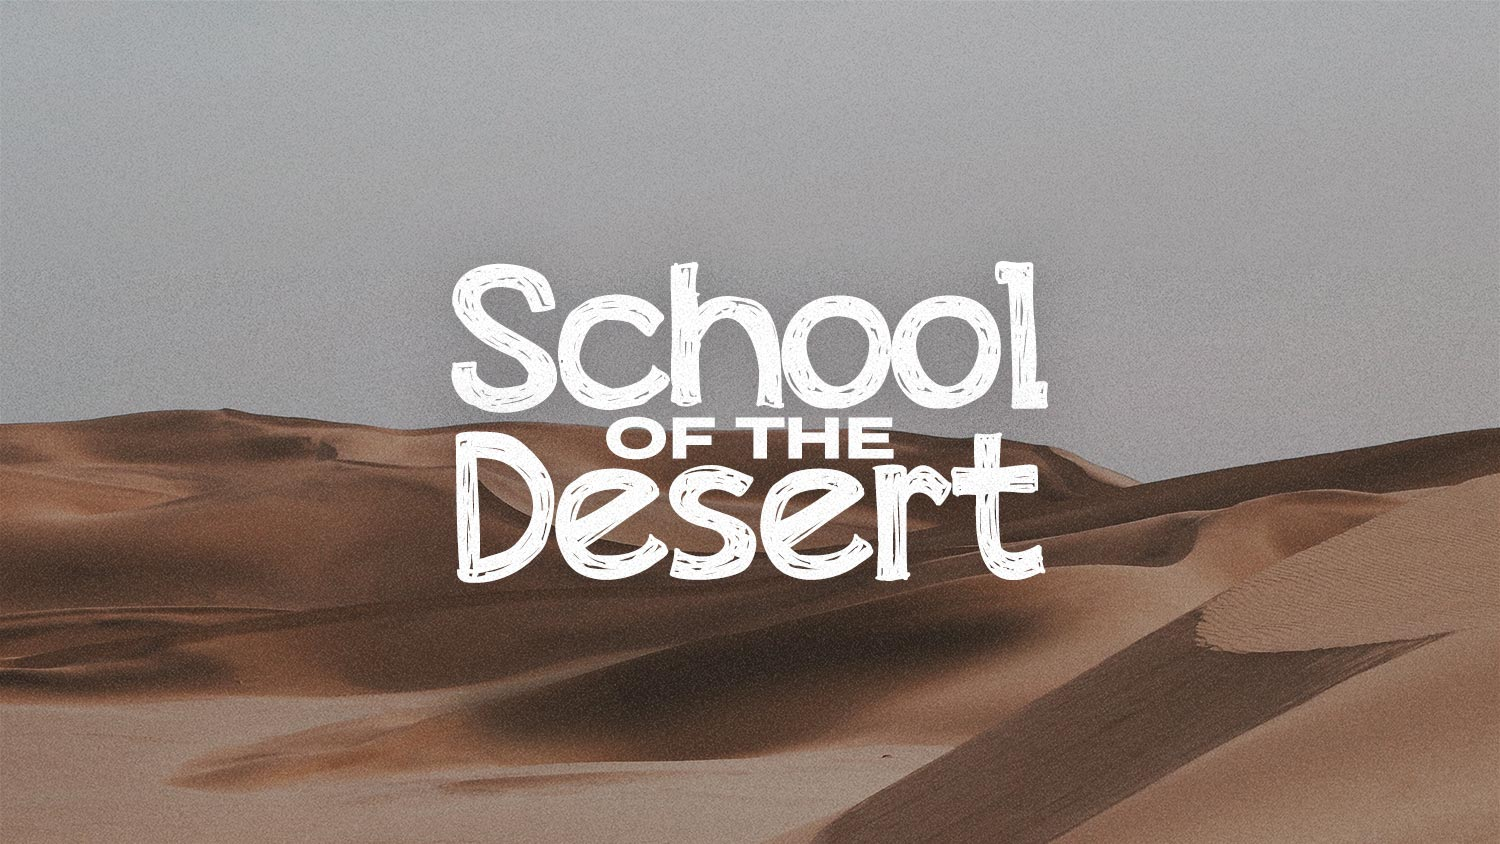 School of the Desert